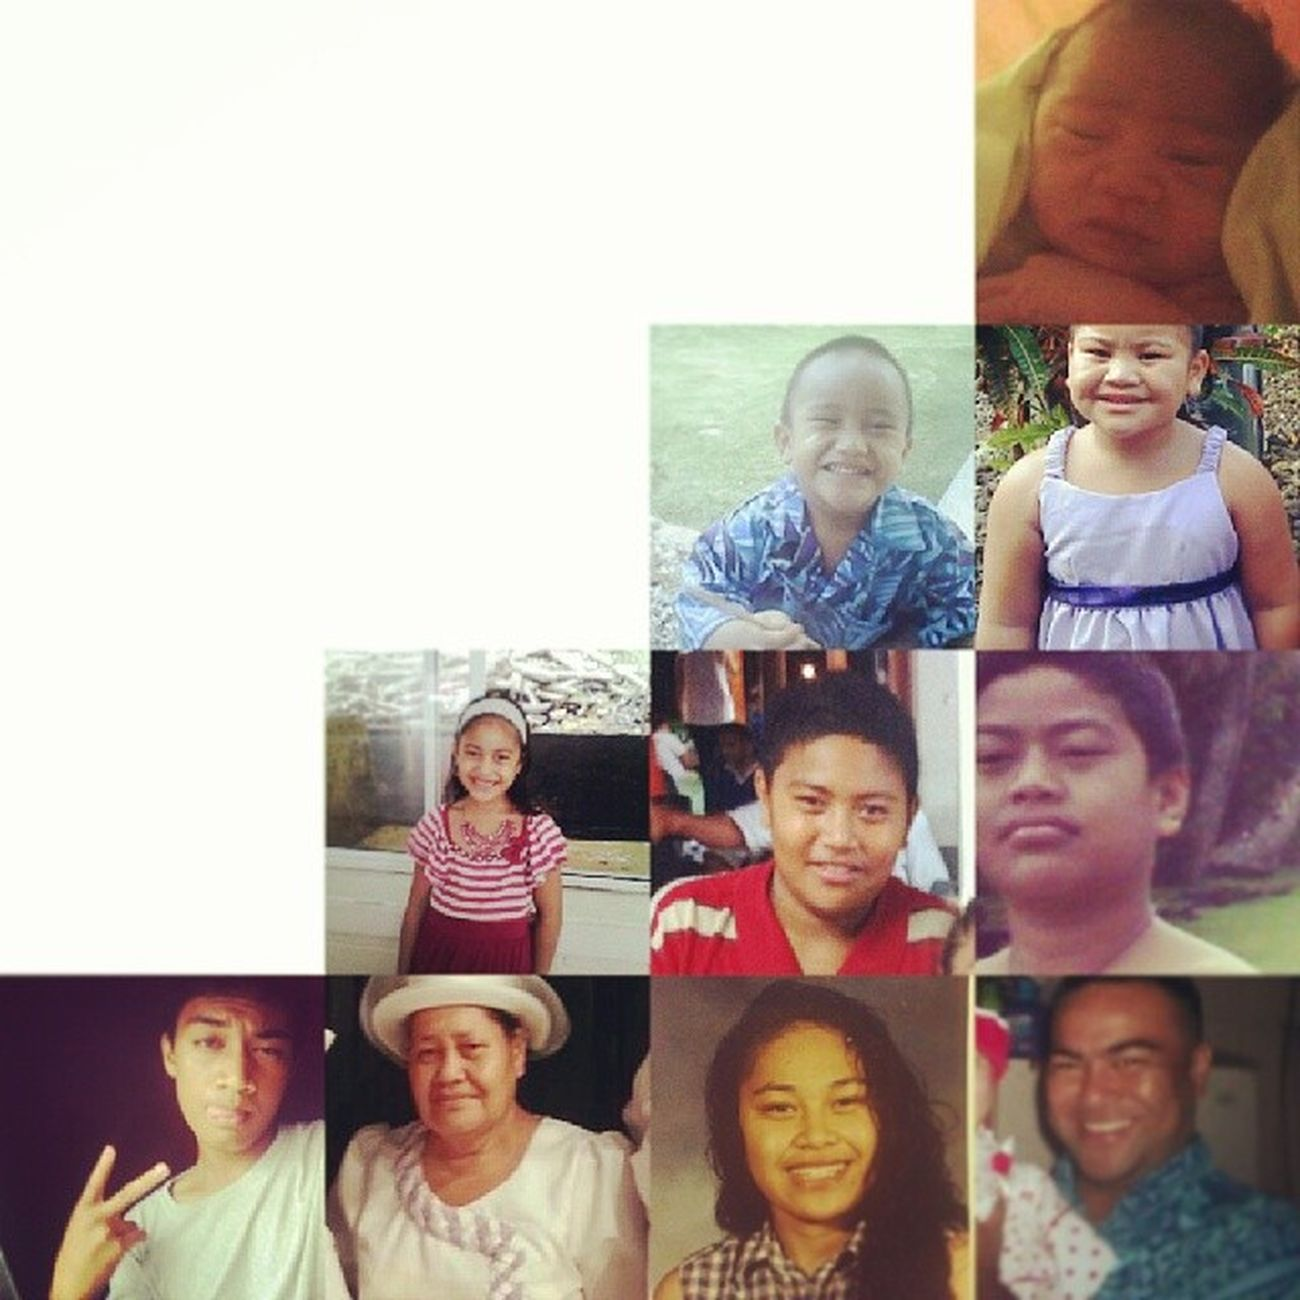 ;Our Family Square Tree I Made. our family never gives up smiling. ;Fuiava-TipotI Family Pack. Myfamily MyMainOne OurSmileNeverFail